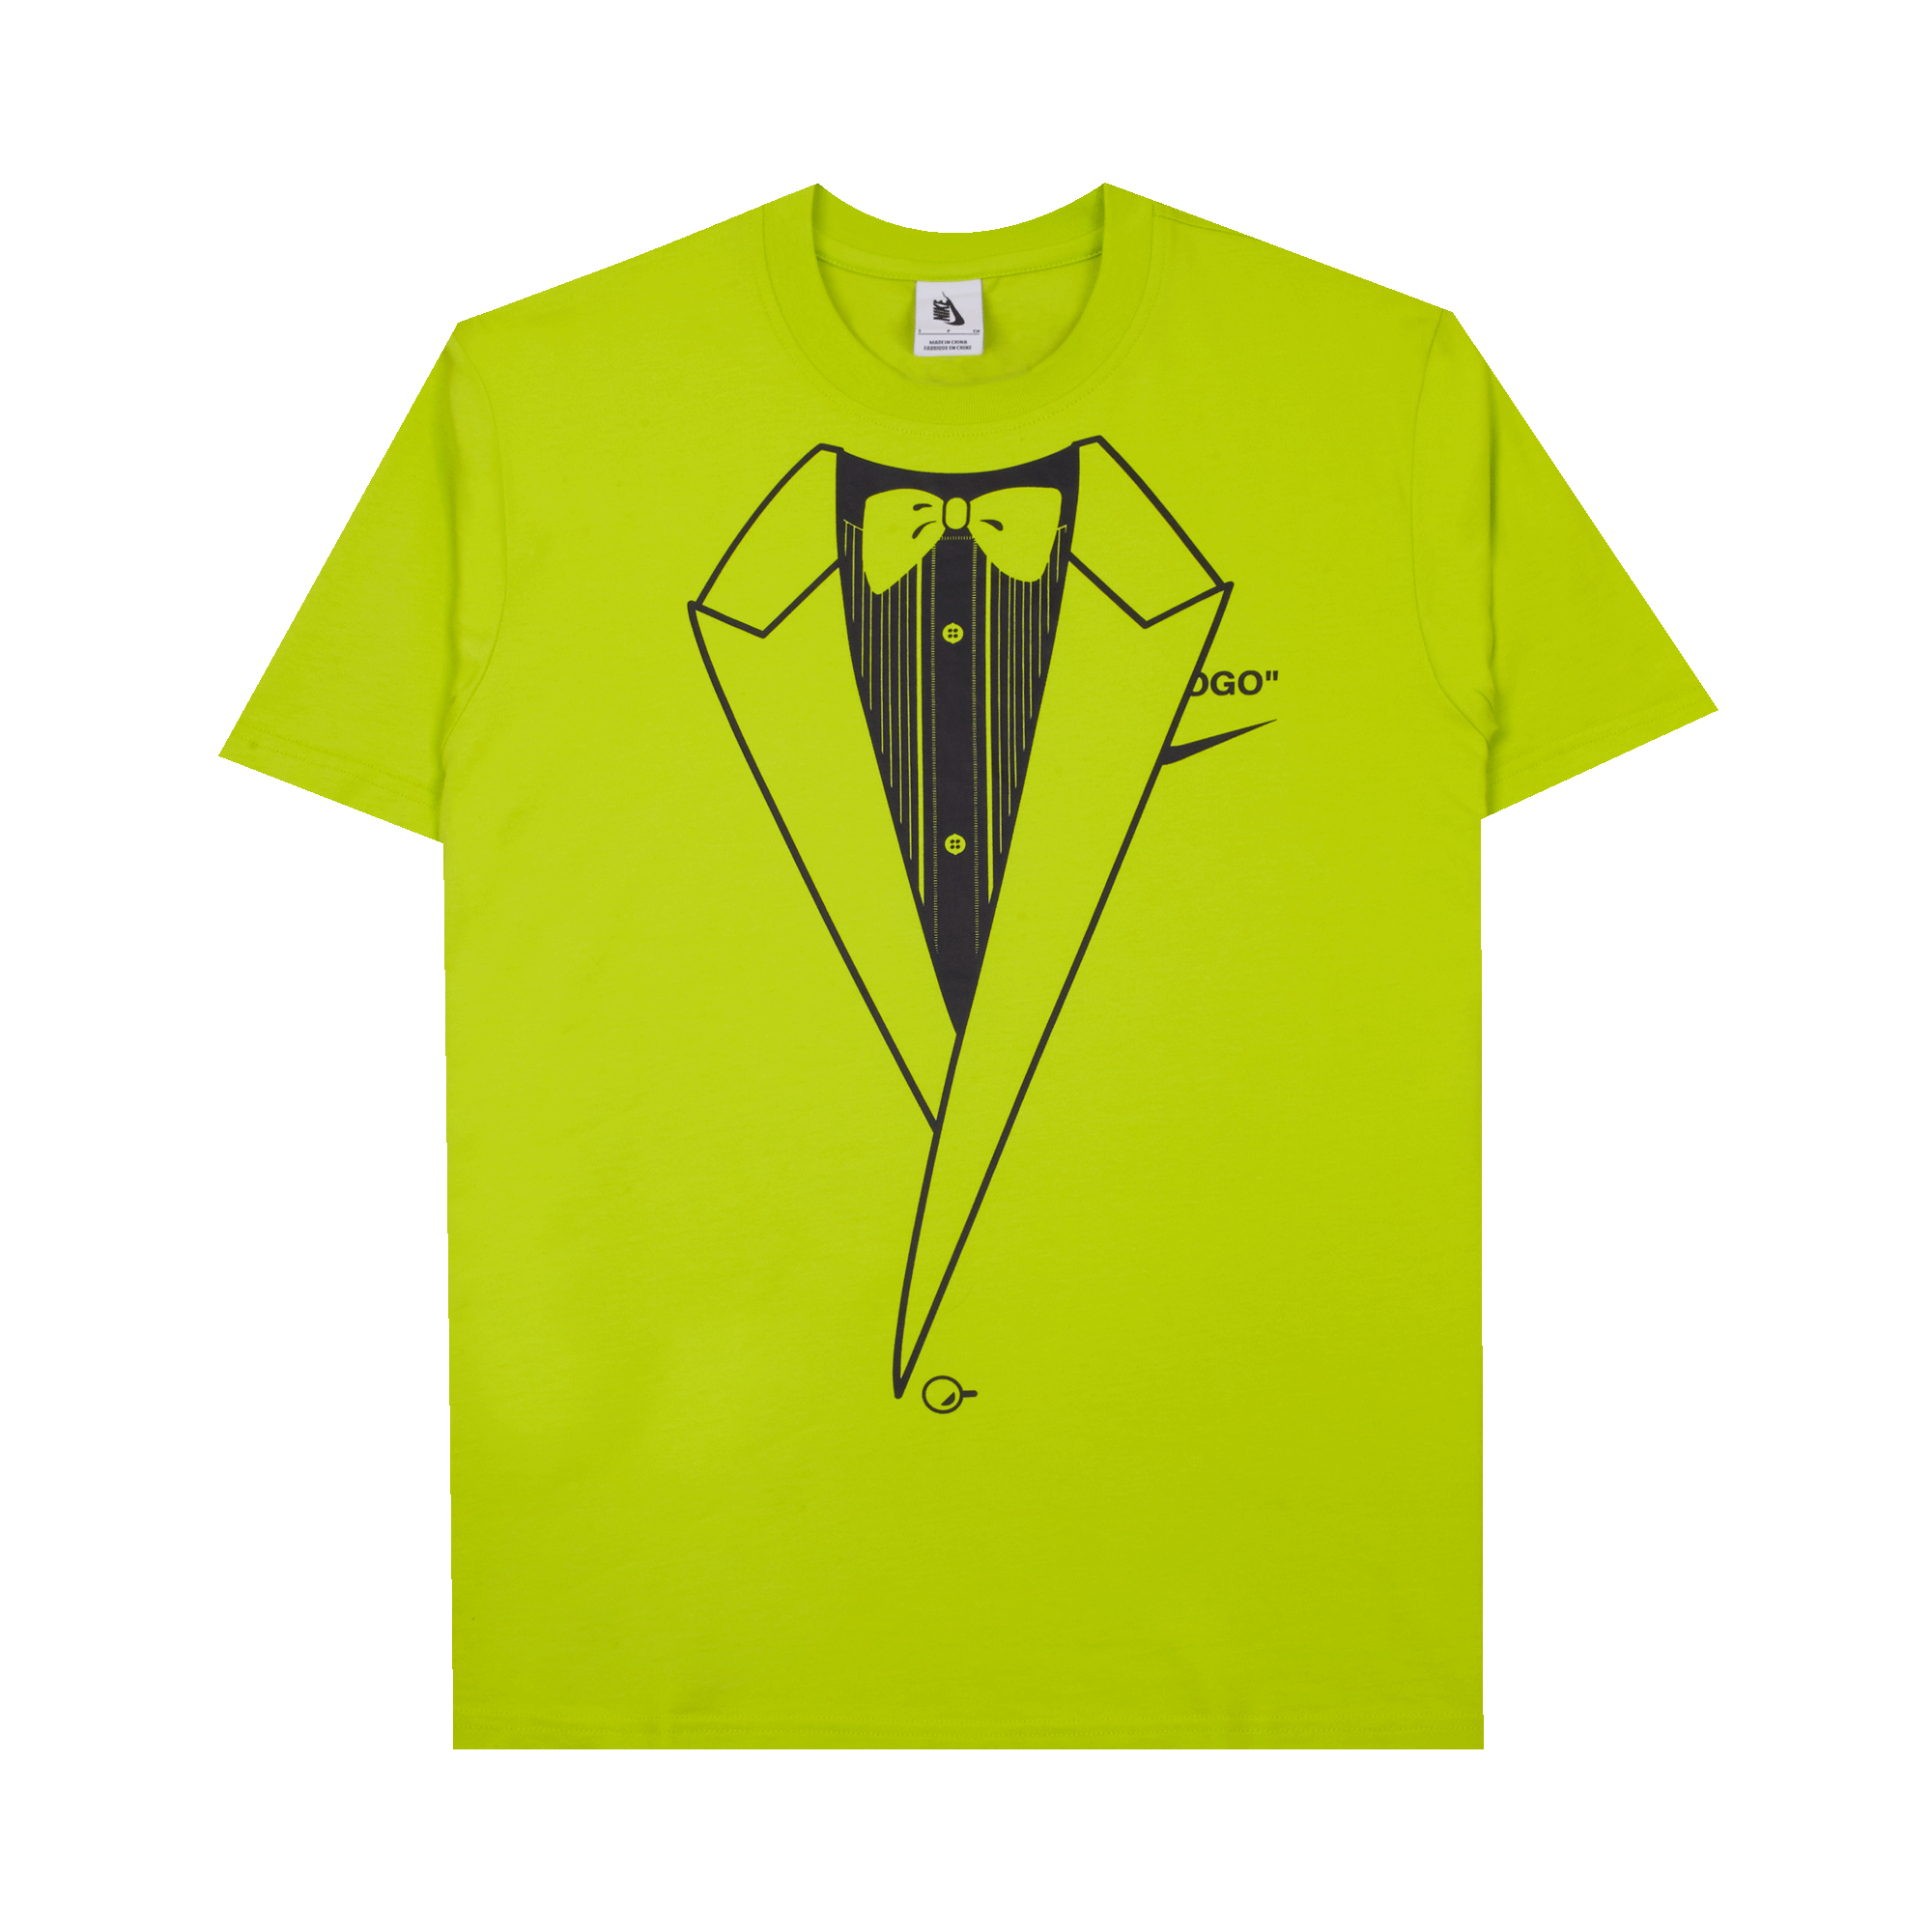 shopping hot products price reduced NikeLab NRG AG Tee x Off White volt / black - T-shirt | Holypopstore.com